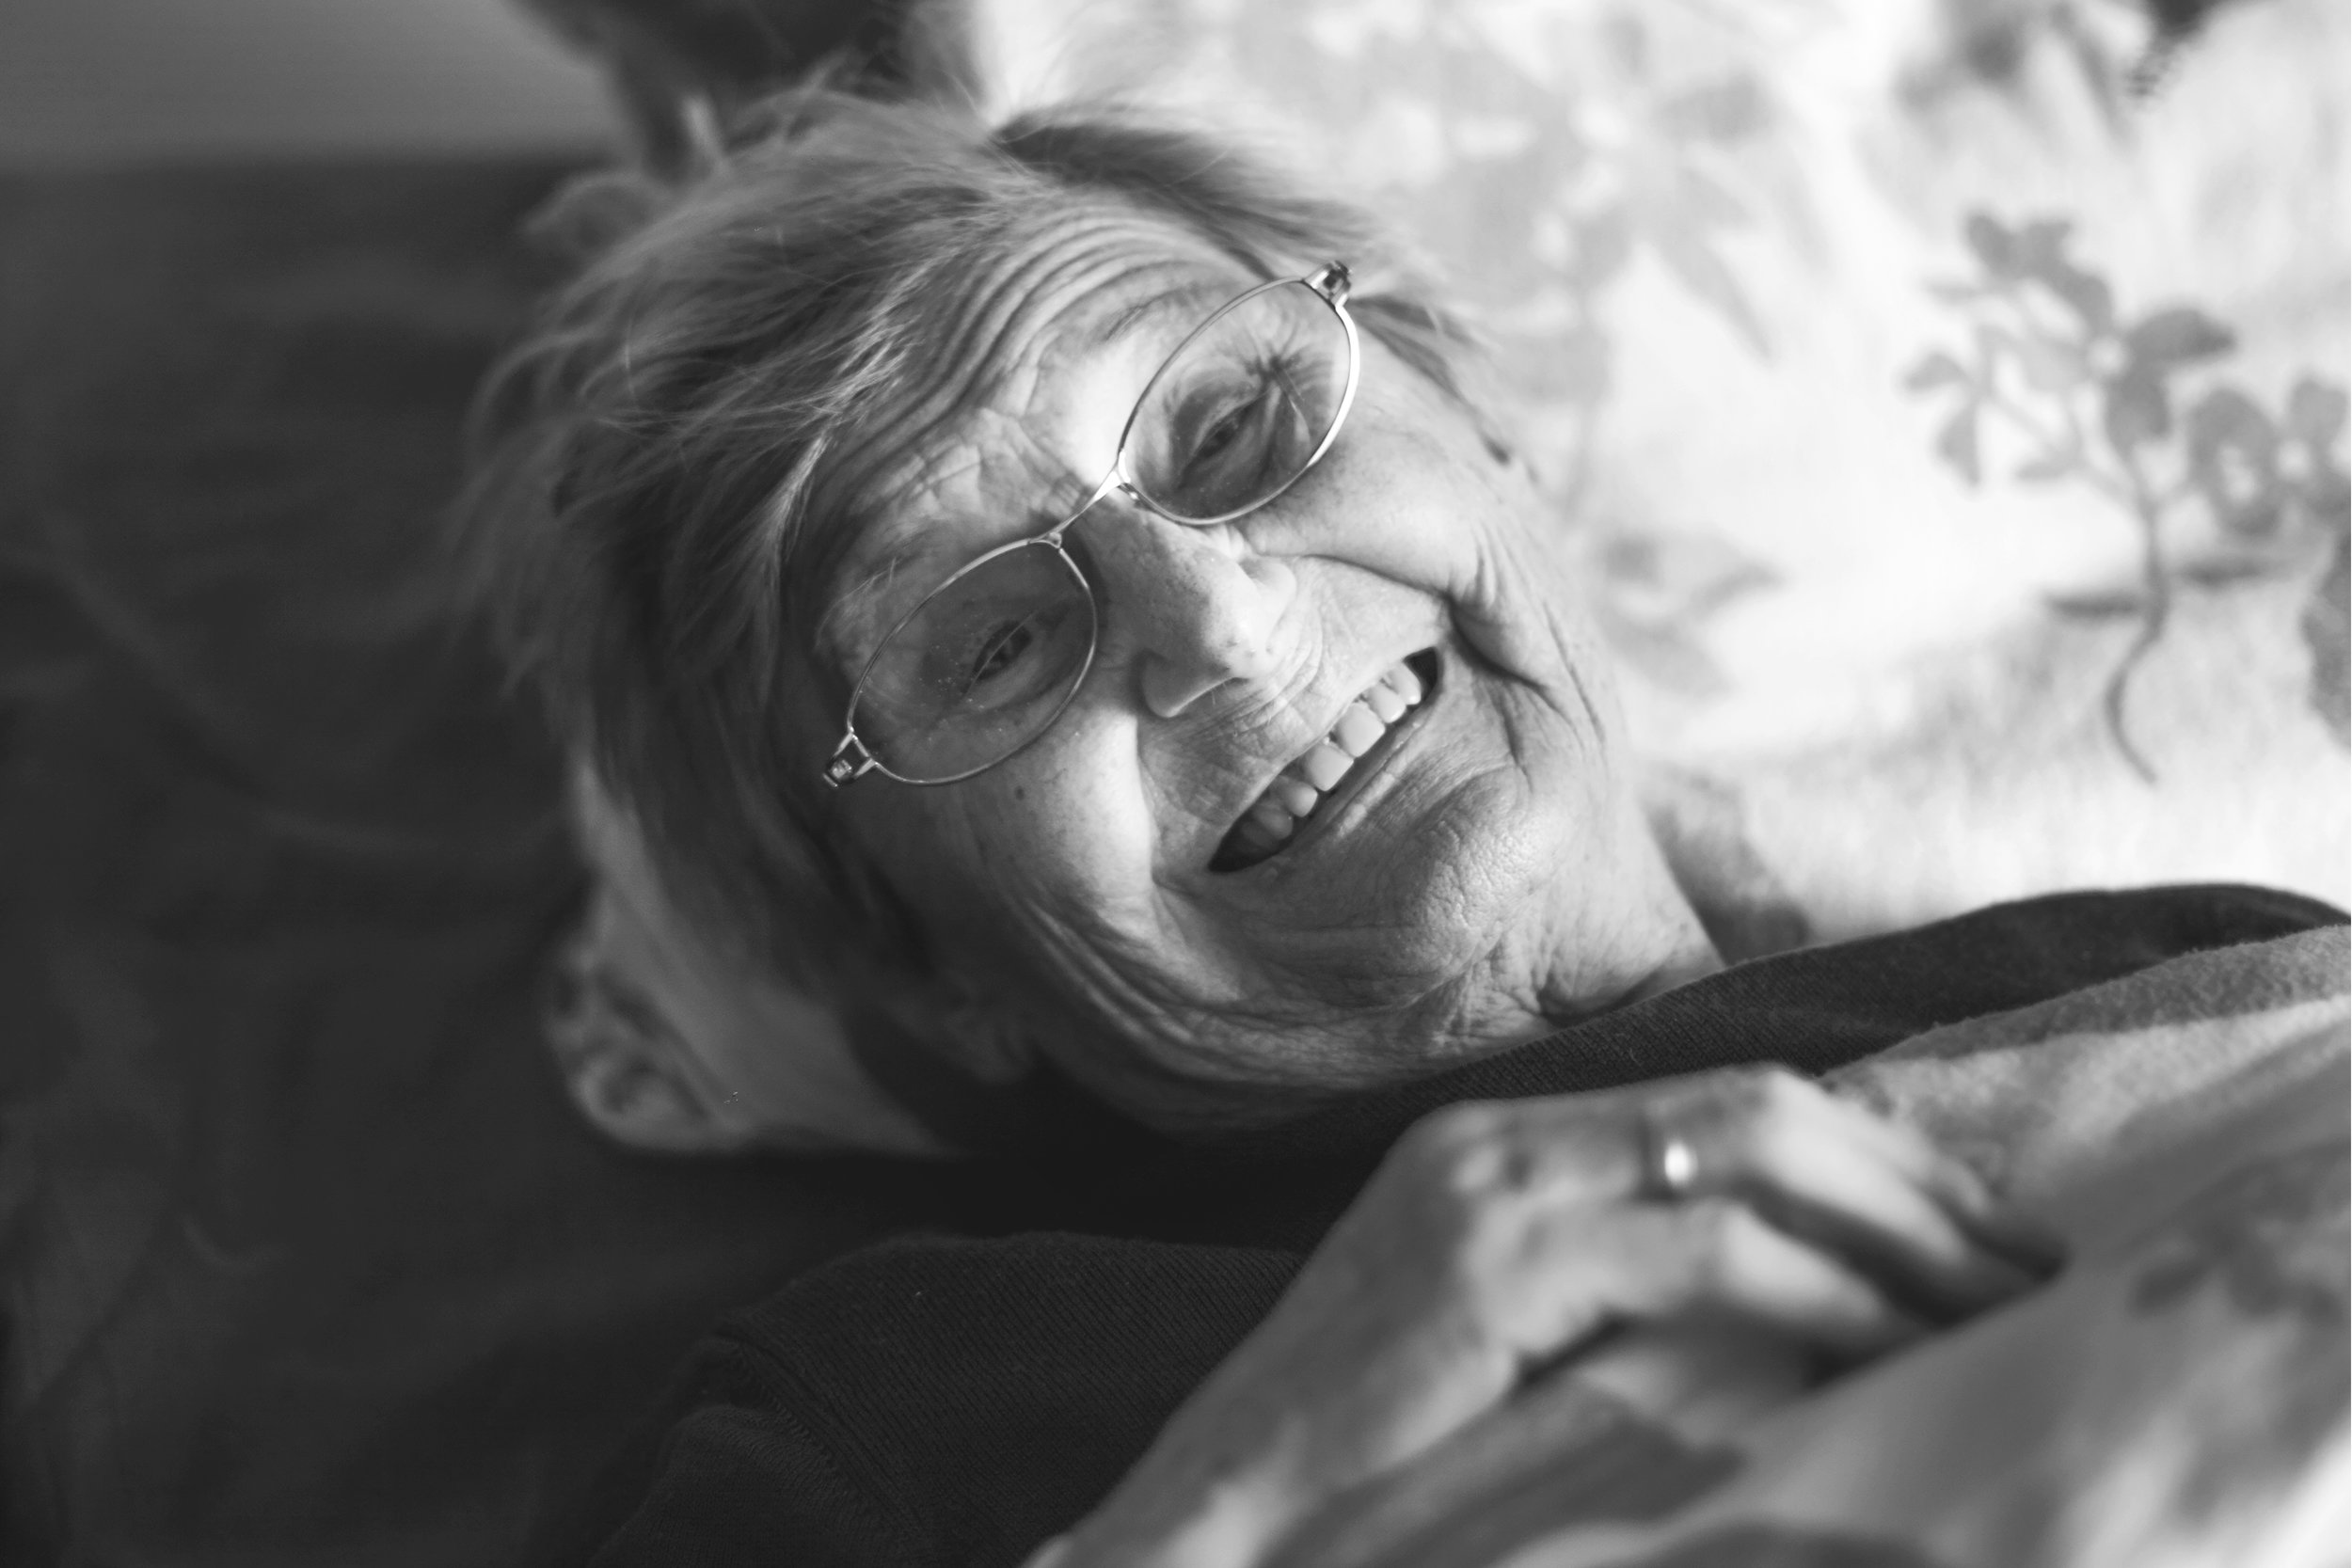 Roughly a month before her passing